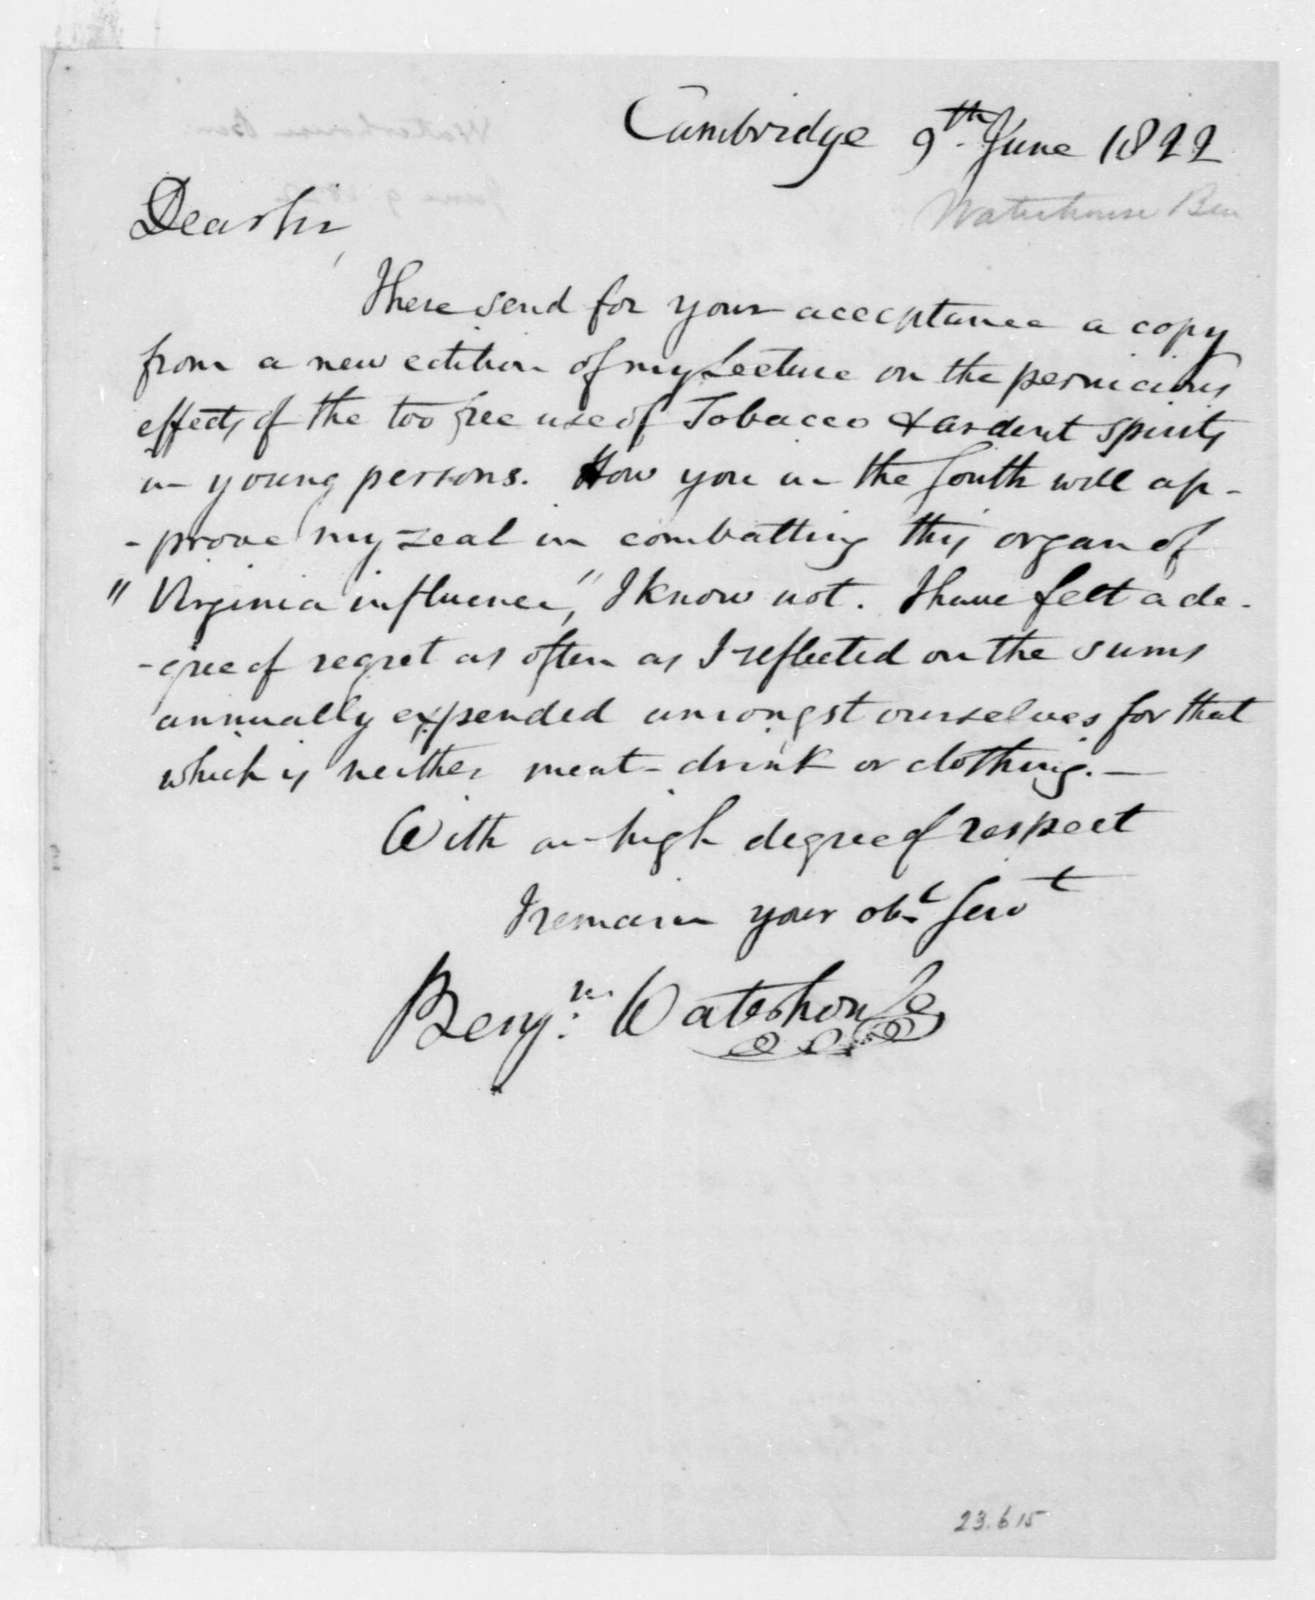 Benjamin Waterhouse to James Madison, June 9, 1822.